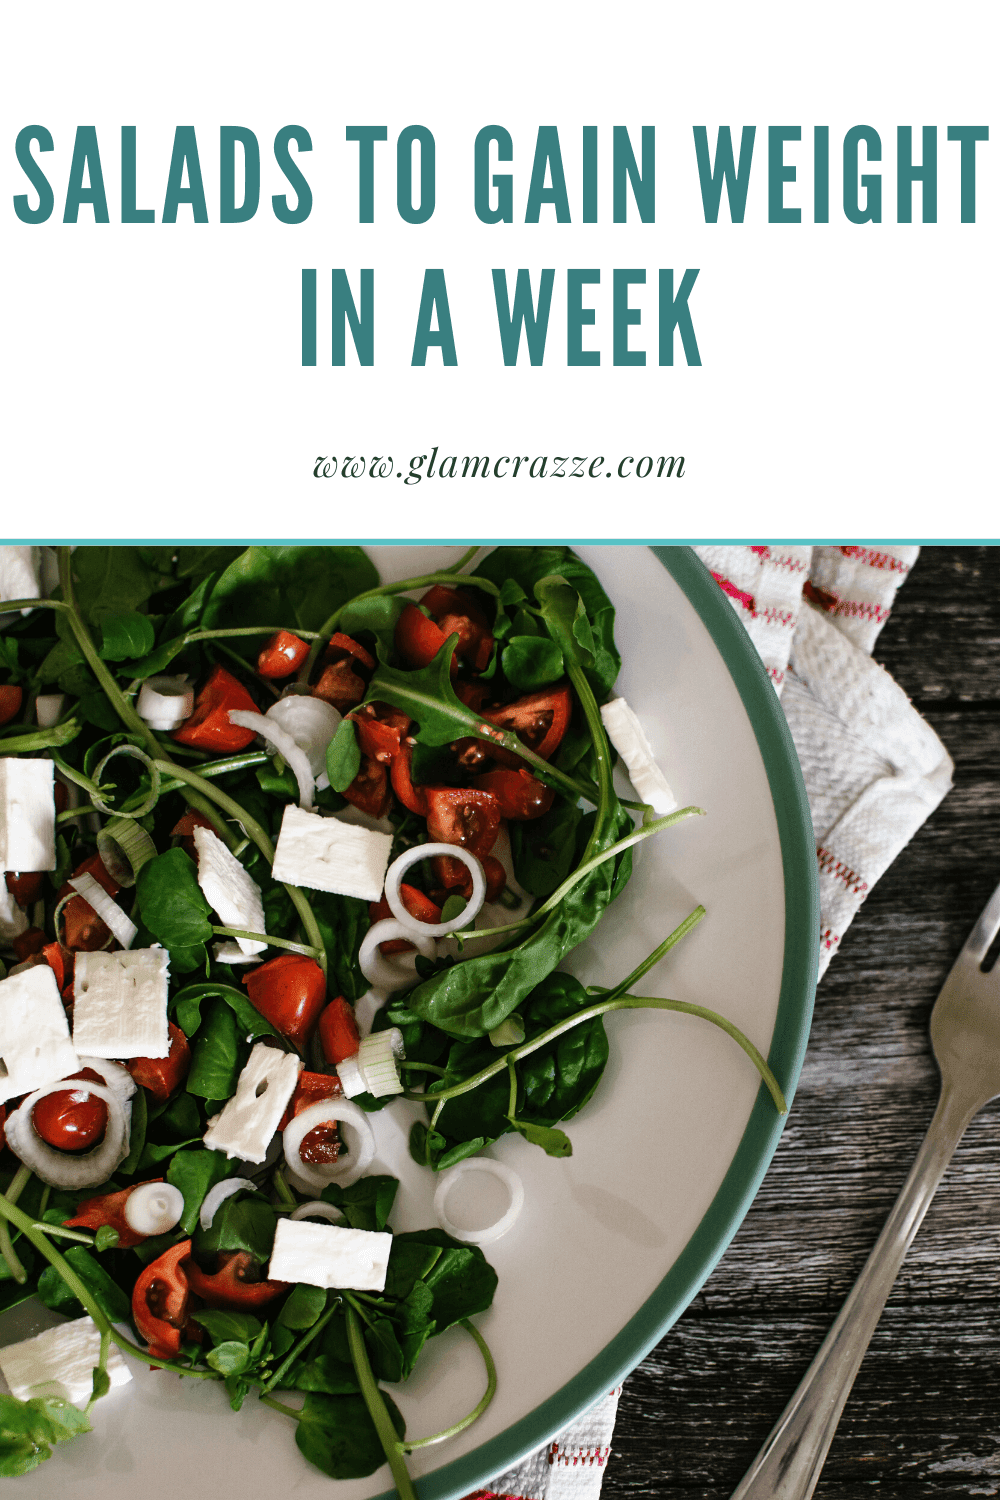 How to gain weight in a week while having salads